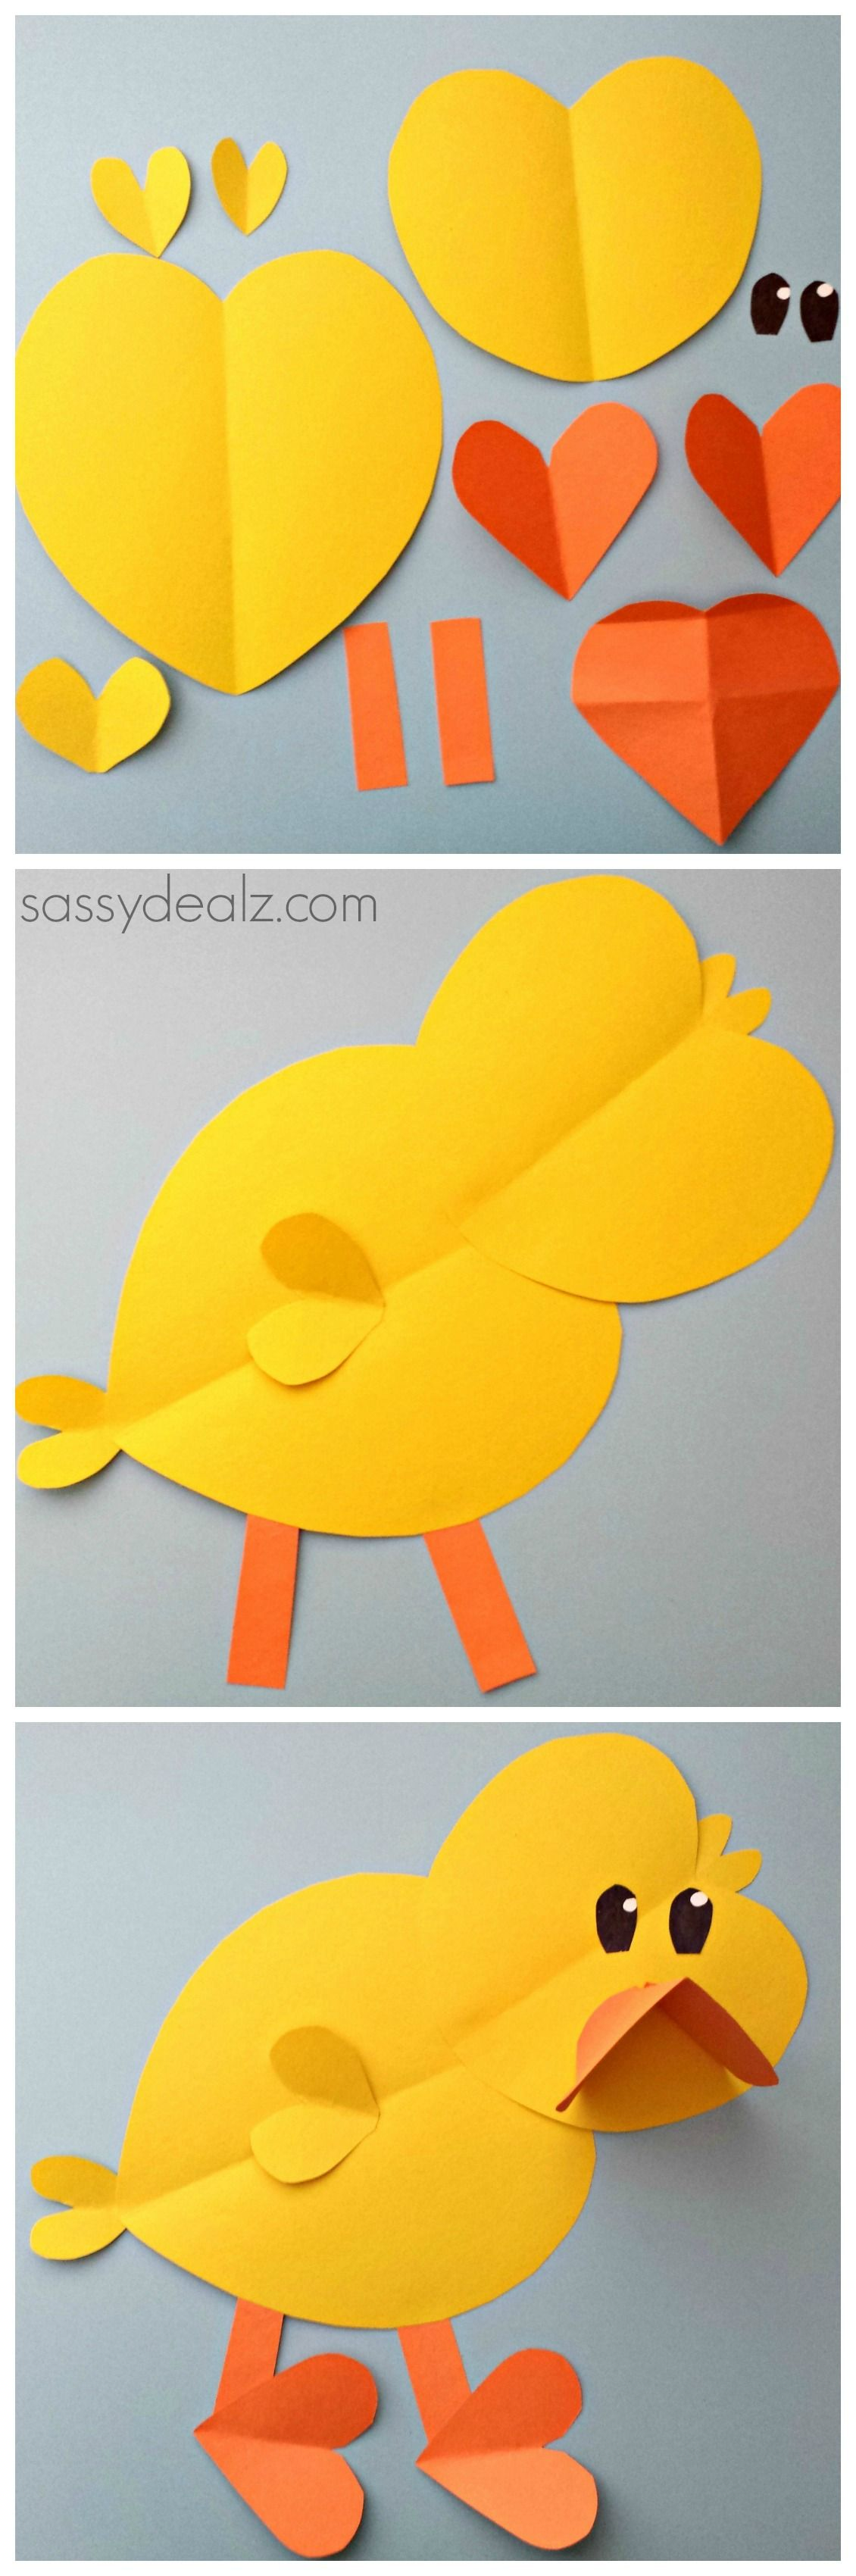 Chick craft for kids made out of paper hearts art project diy